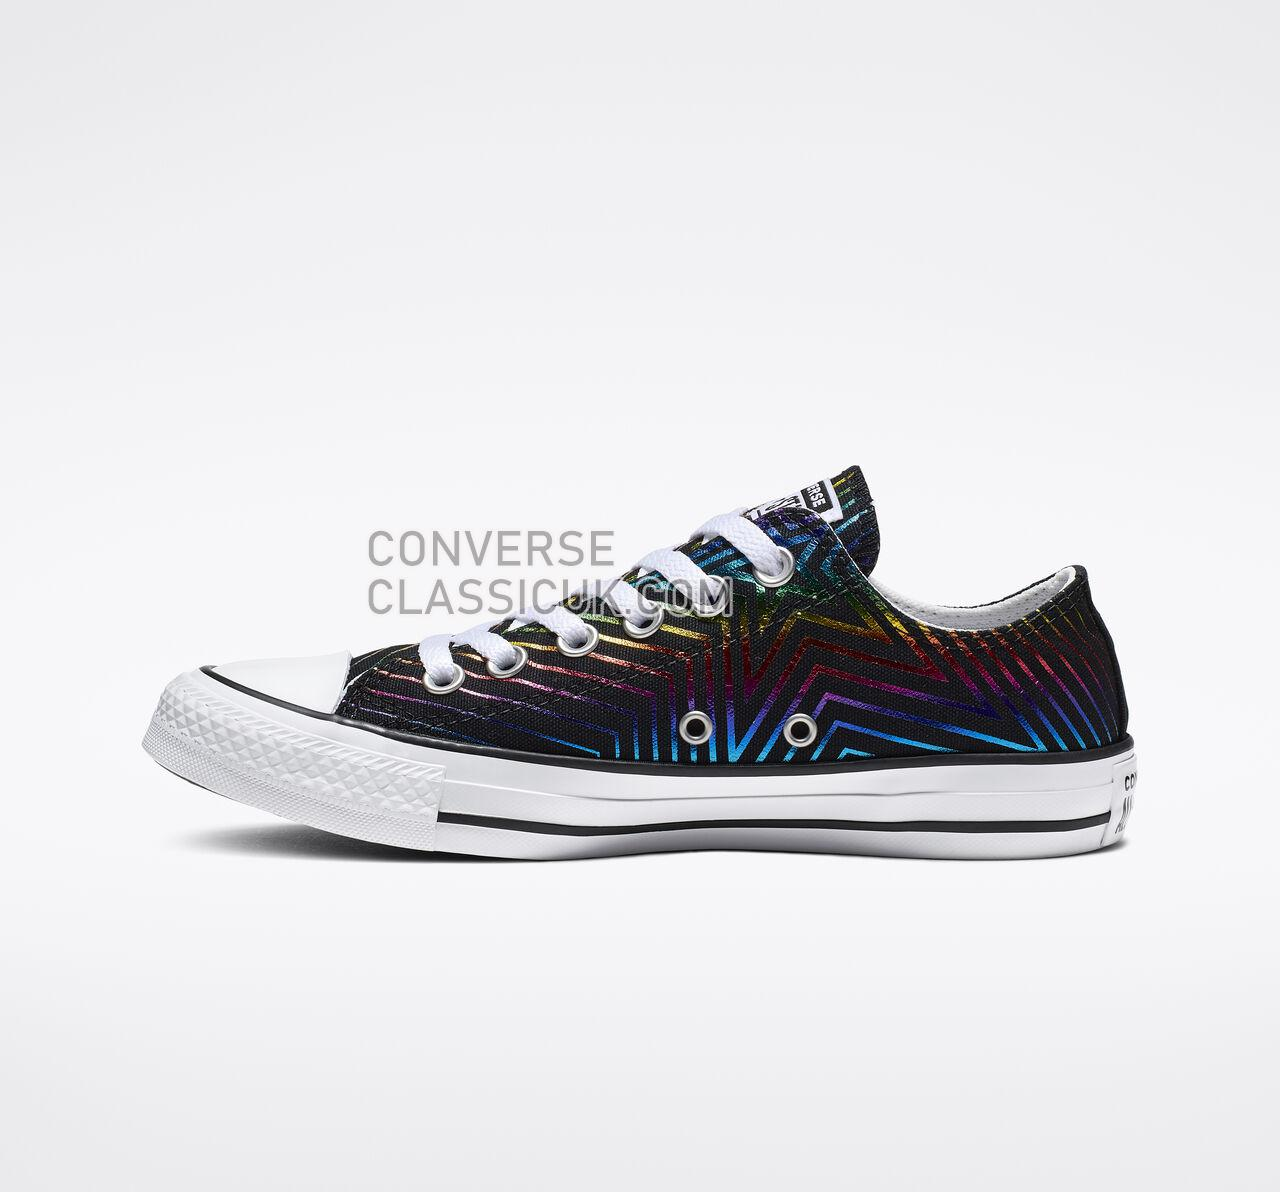 Converse Chuck Taylor All Star Exploding Star Low Top Womens 565439F Black/White/Black Shoes